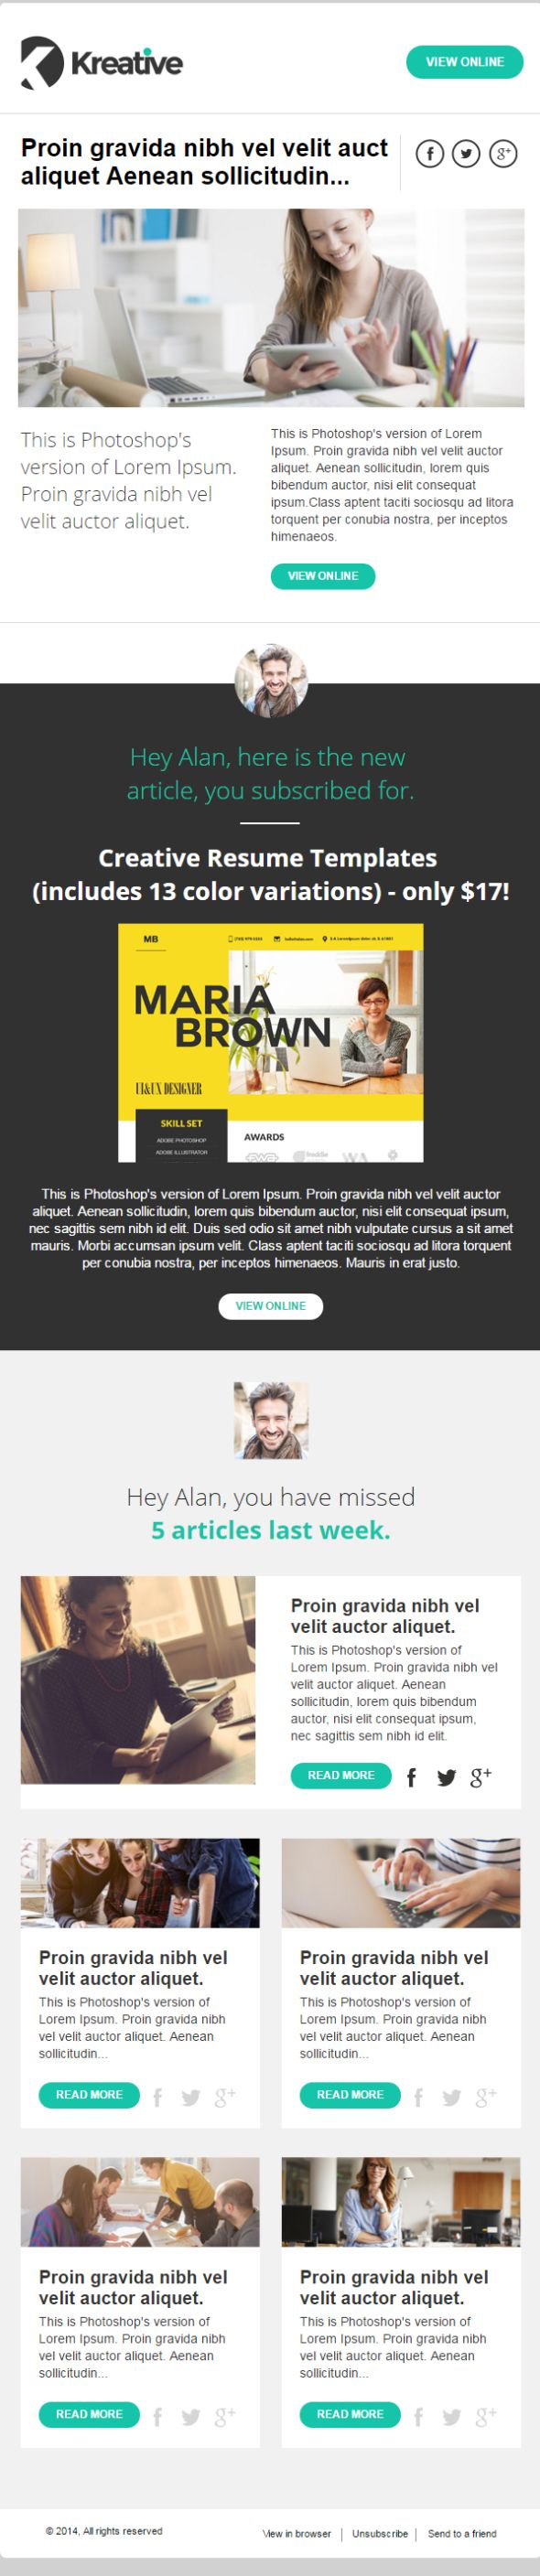 kreative-newsletter-template